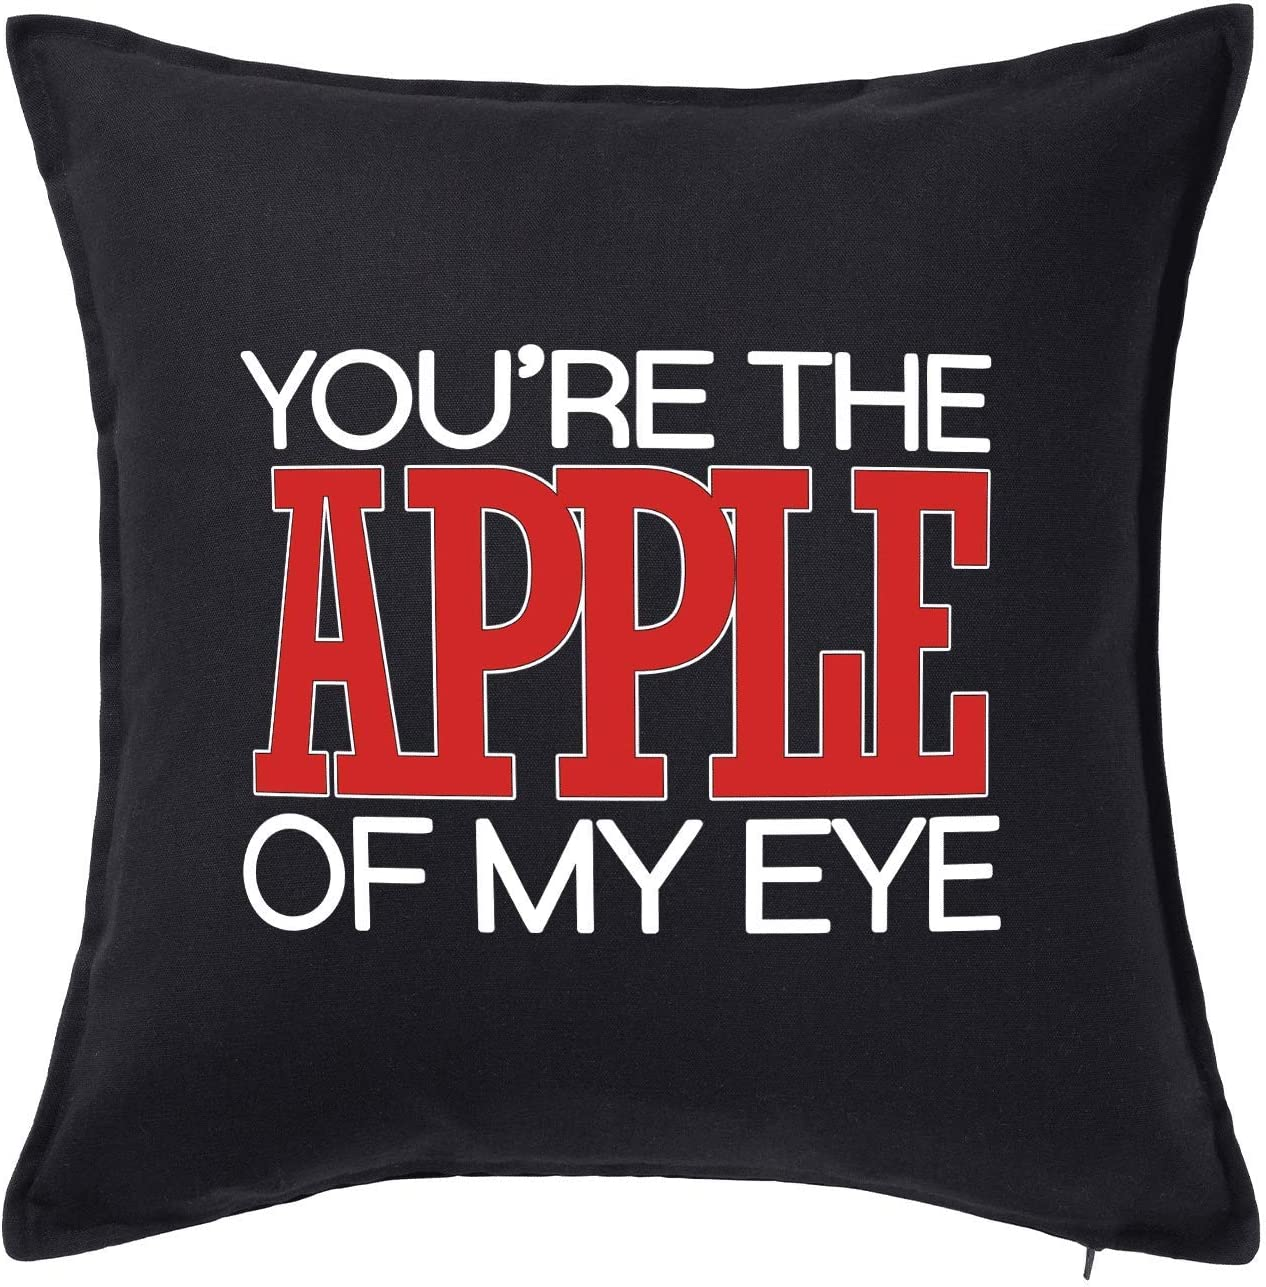 HARD EDGE DESIGN You're The Apple of My Eye Throw Pillow with Polyester Filling